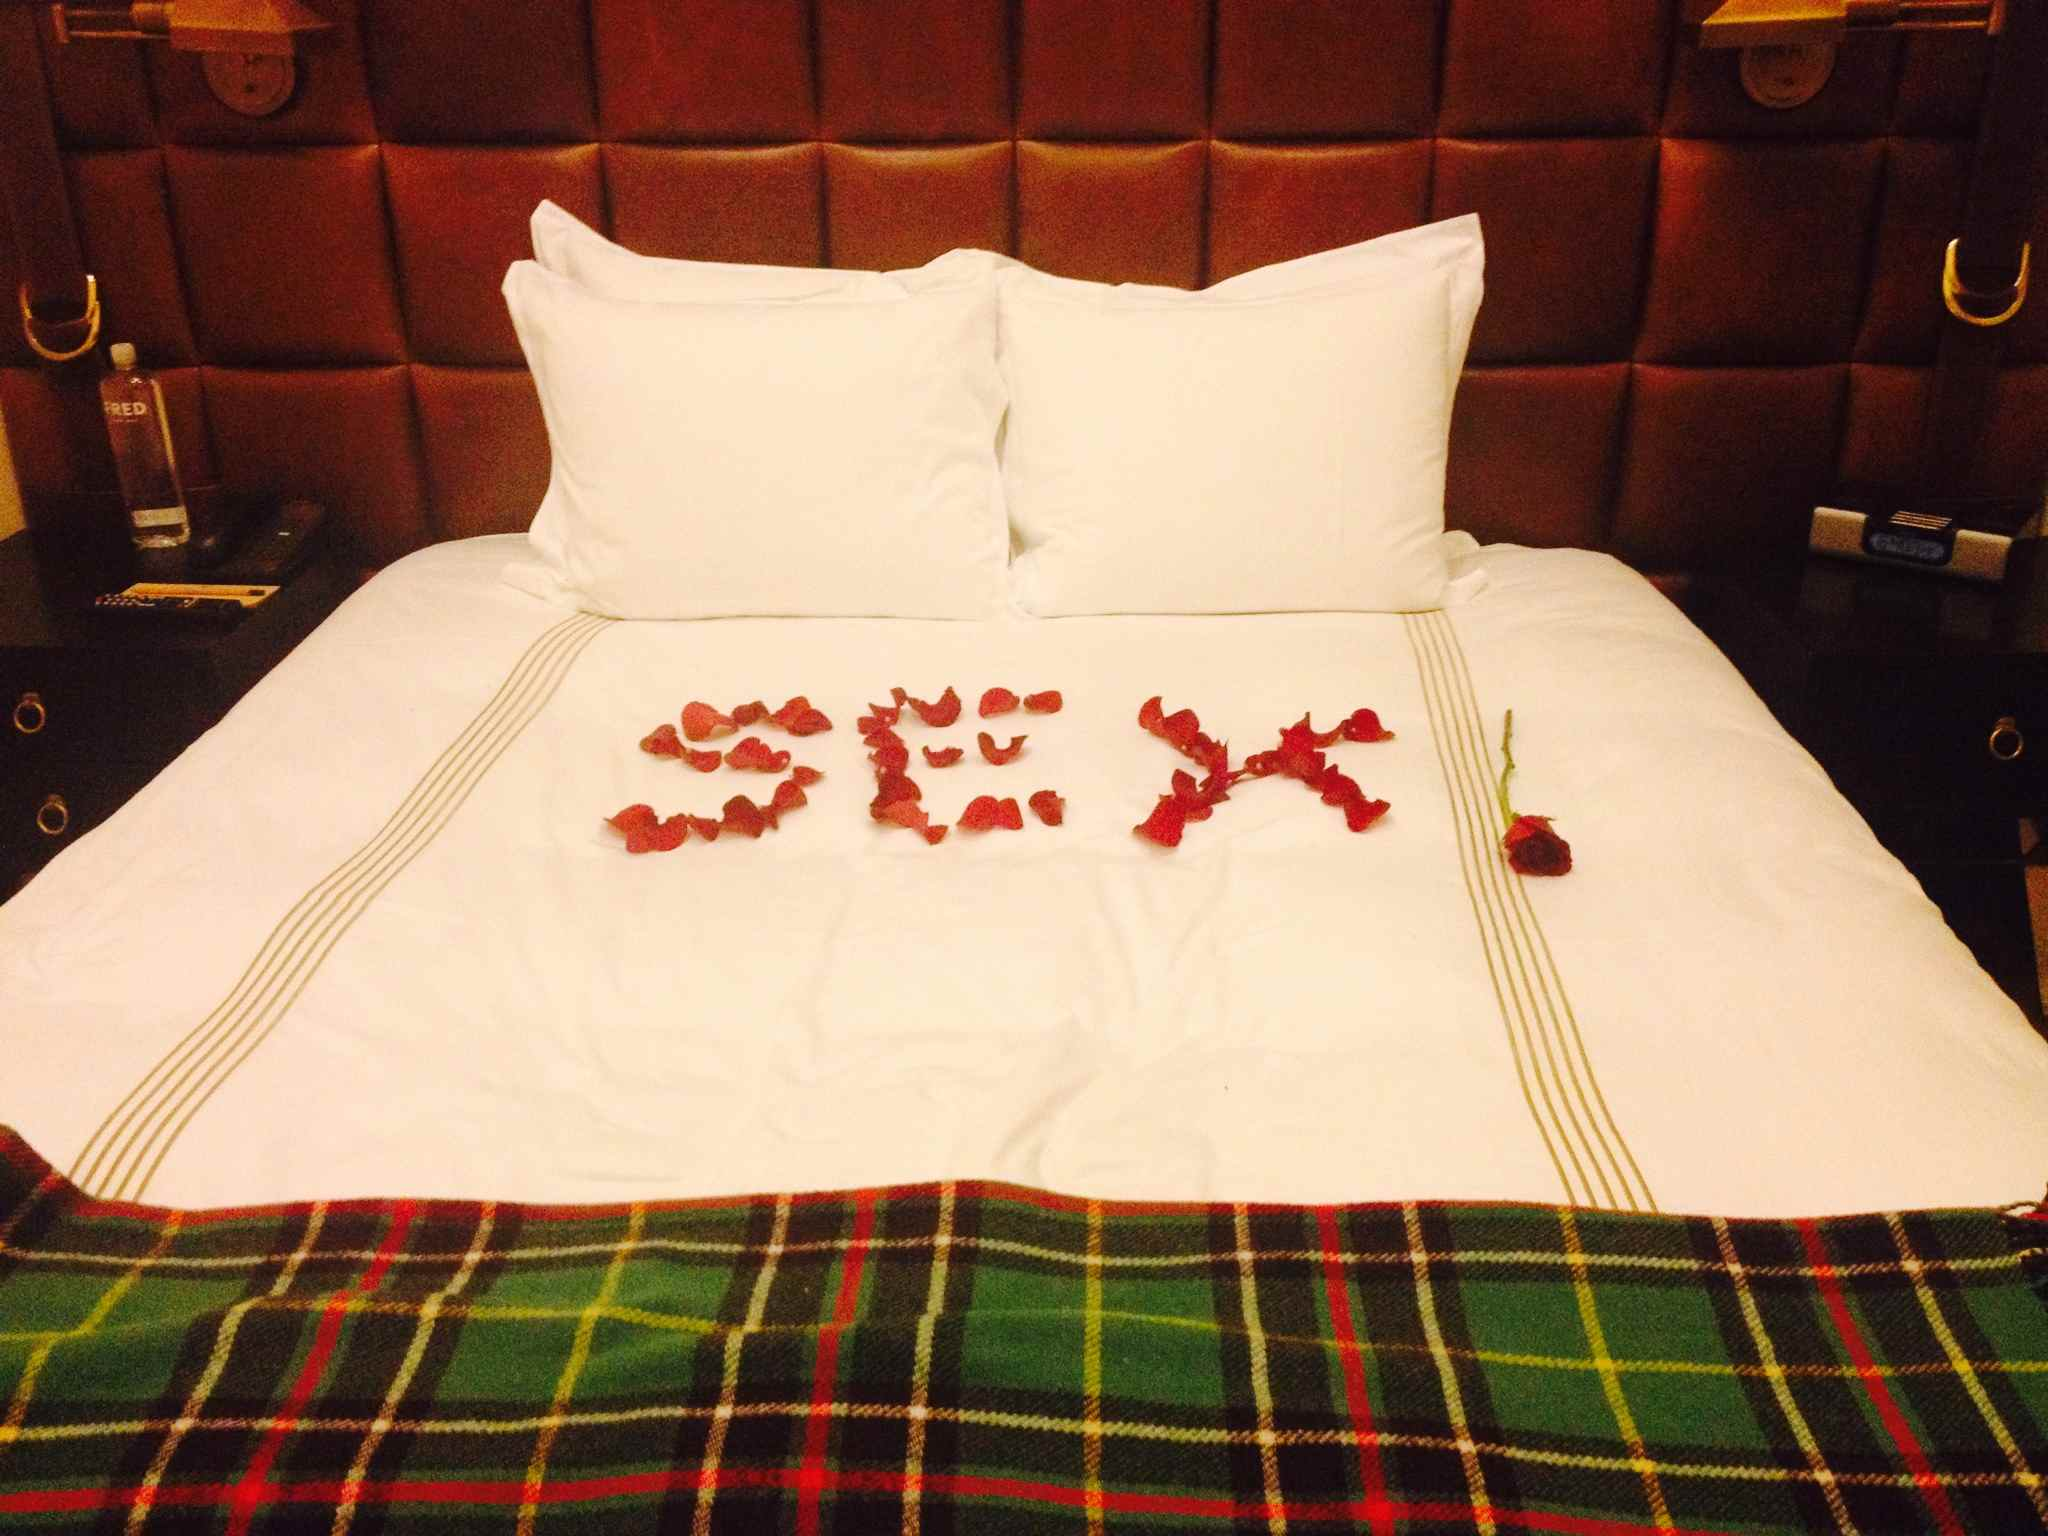 Romantic Bedroom For Her Guy Has Hotel Staff Write Romantic Message In Rose Petals On Their